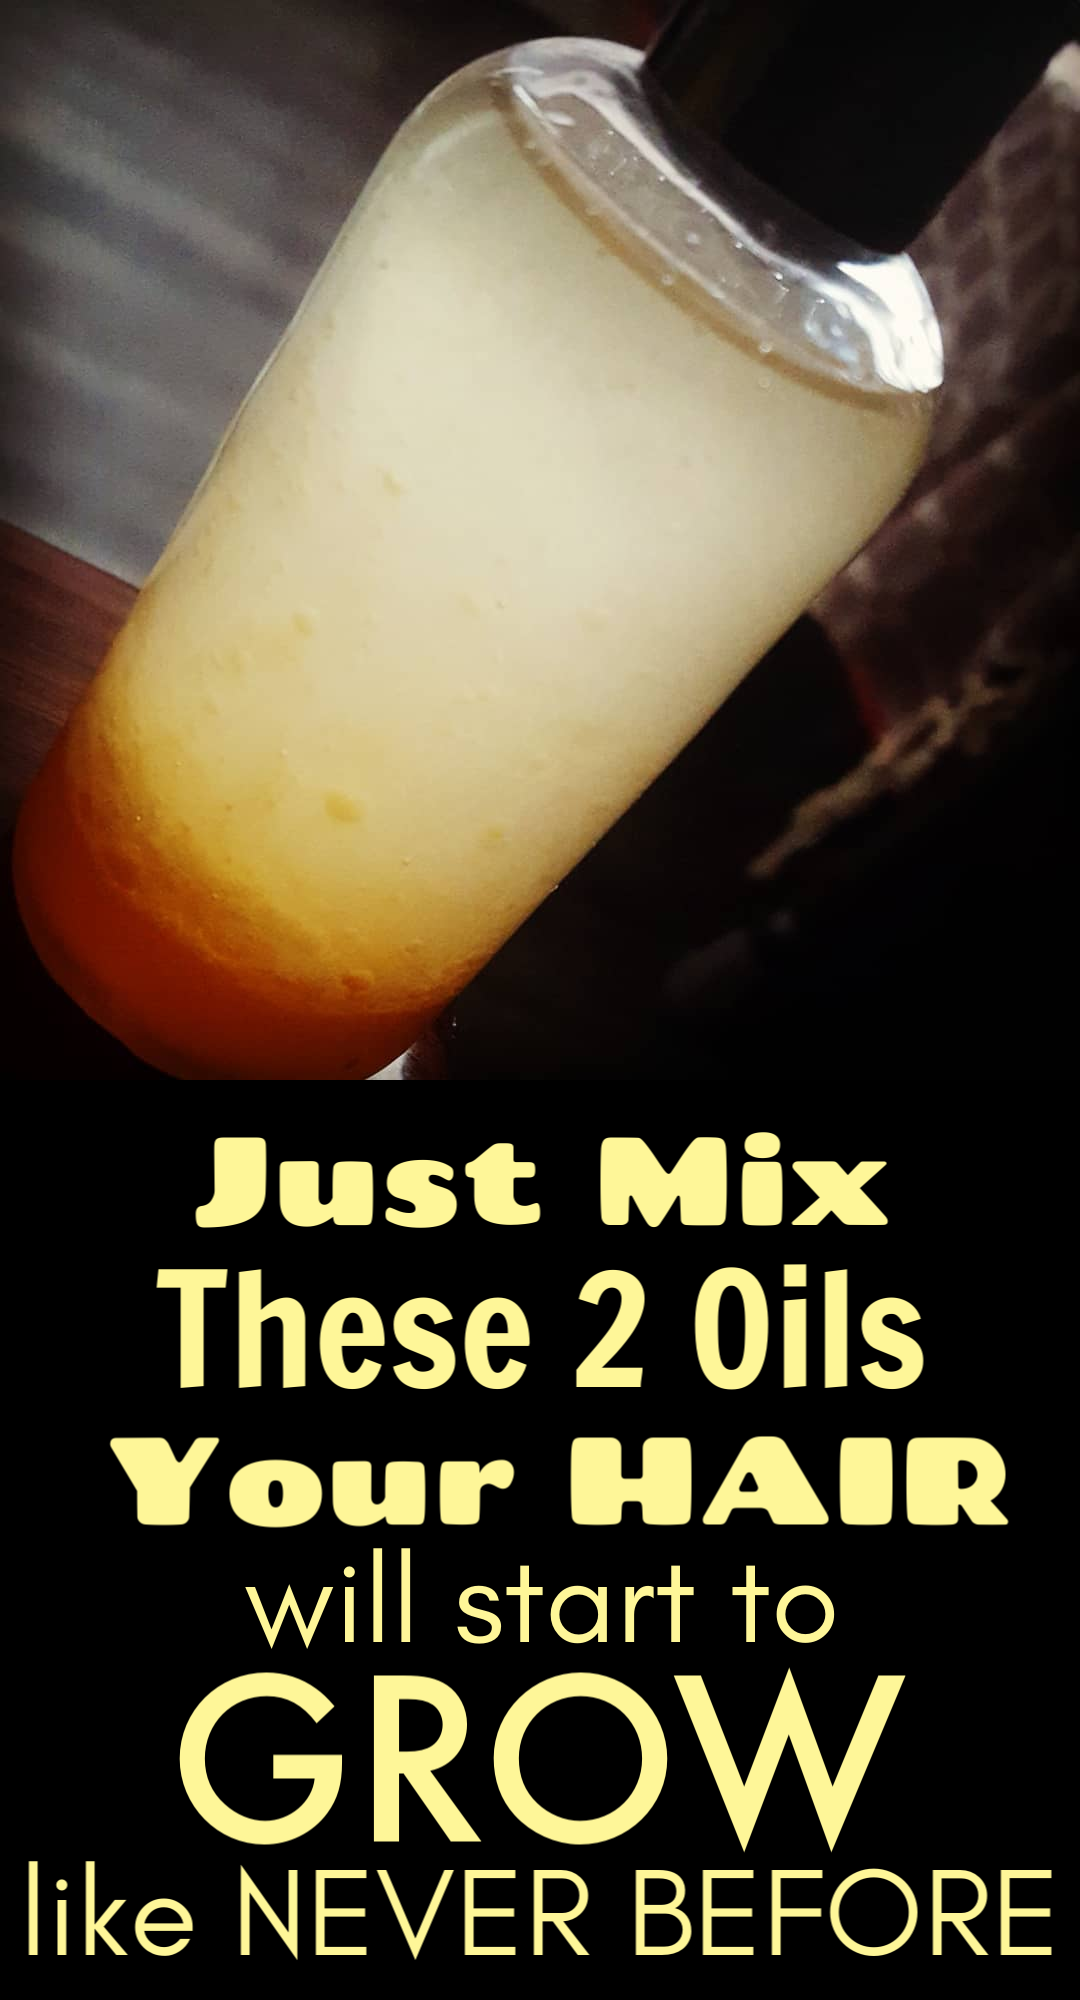 Mix these 4 oils together and use it daily, You will get long and problem free hairs in just 2 months -   12 hairstyles Quick healthy hair ideas